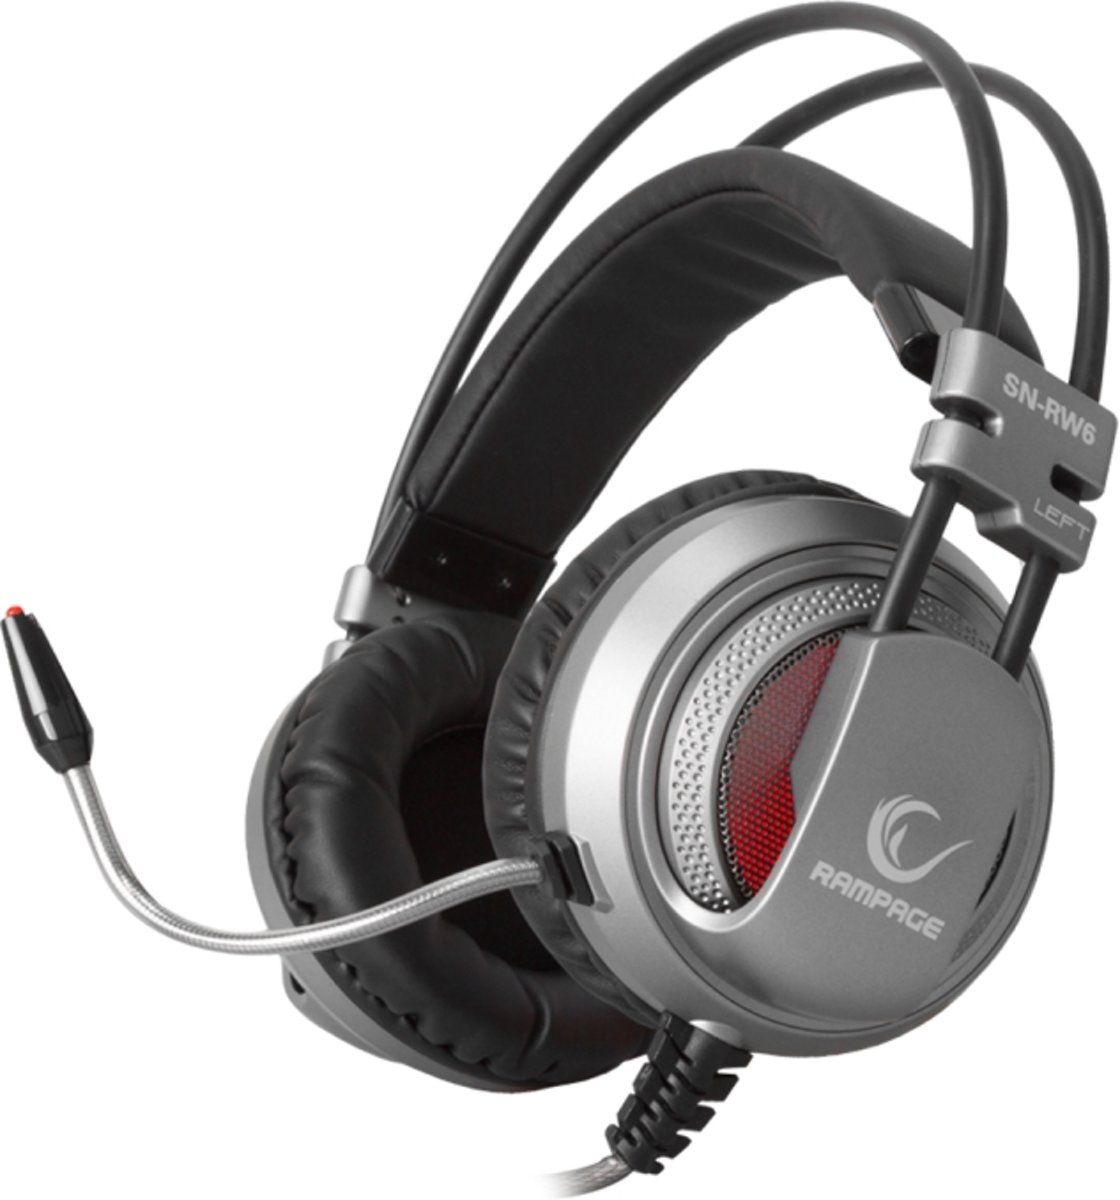 Rampage SN-RW6 7.1 surround sound gaming headset